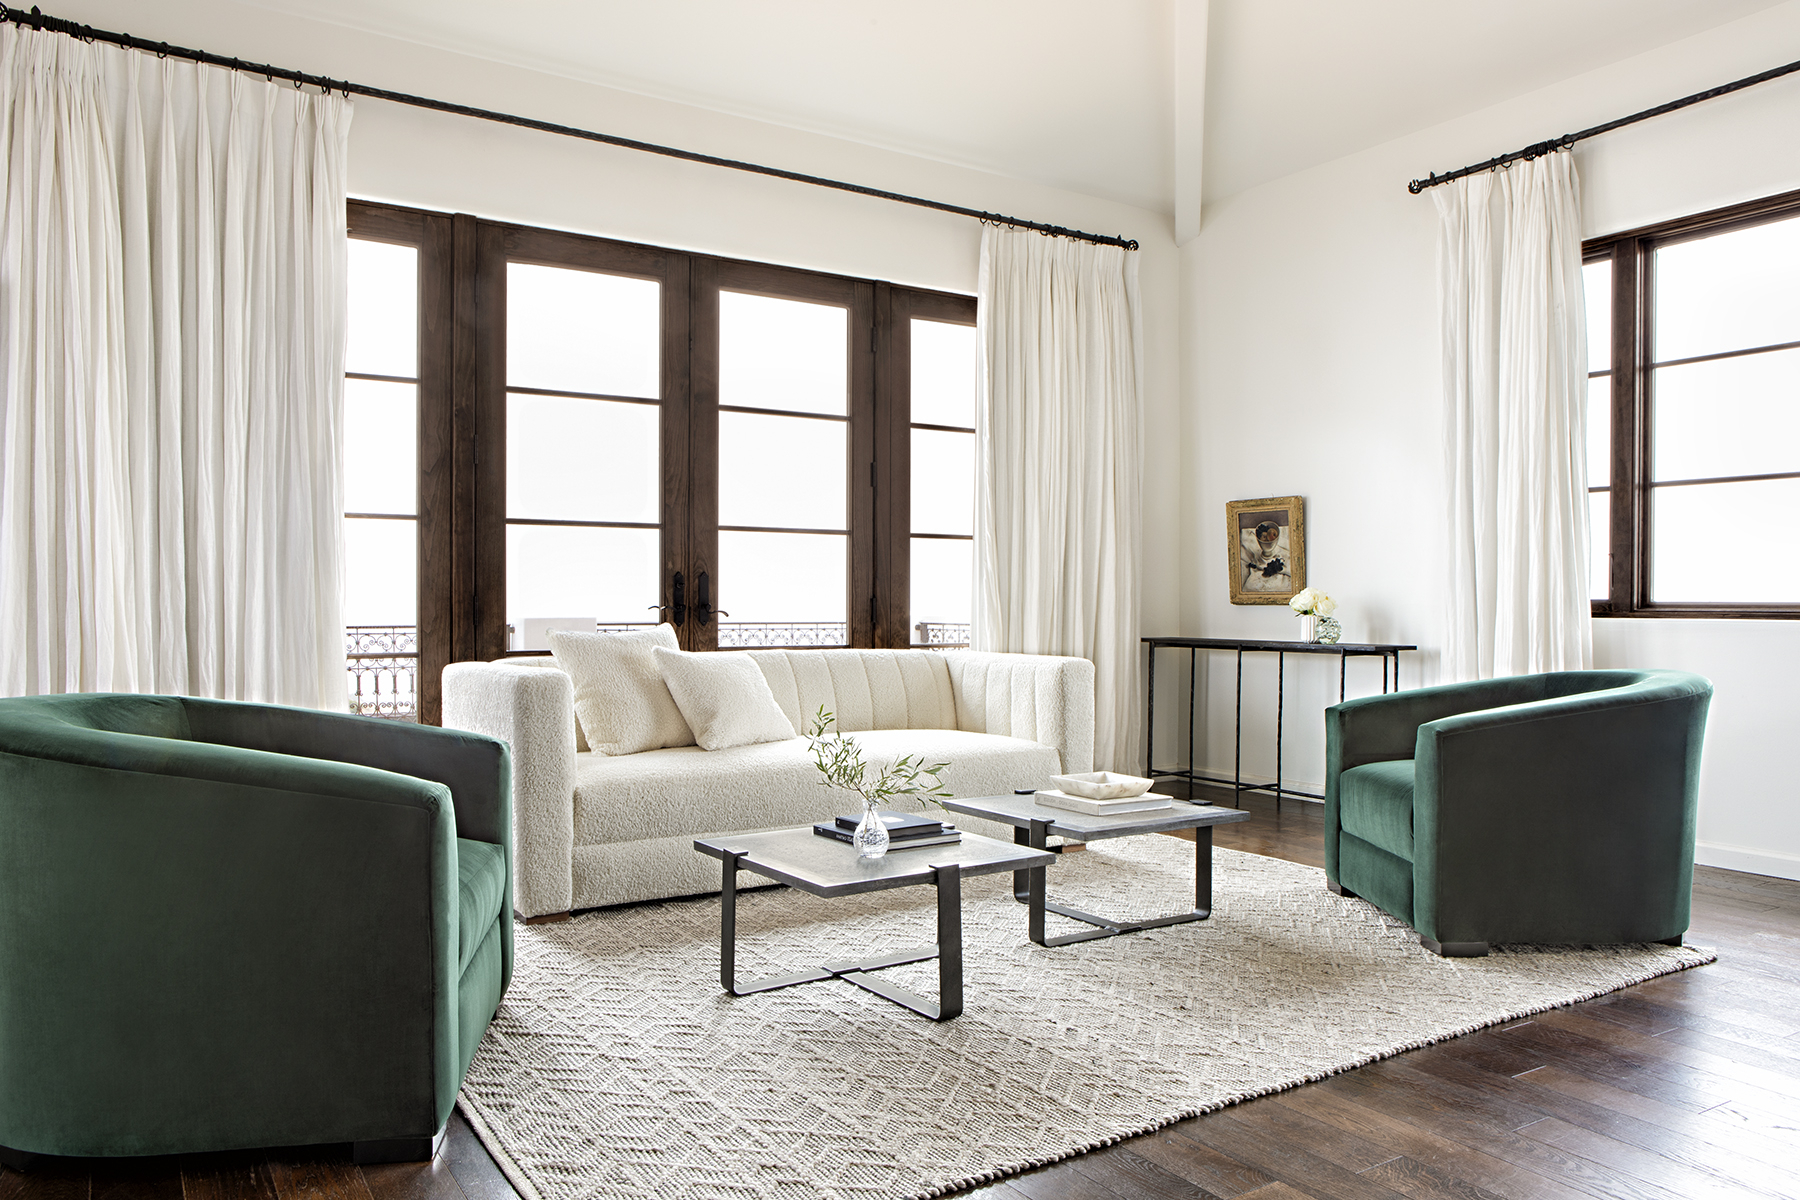 Nate Berkus & Jeremiah Brent's Newest Affordable Collection (View 7 of 20)